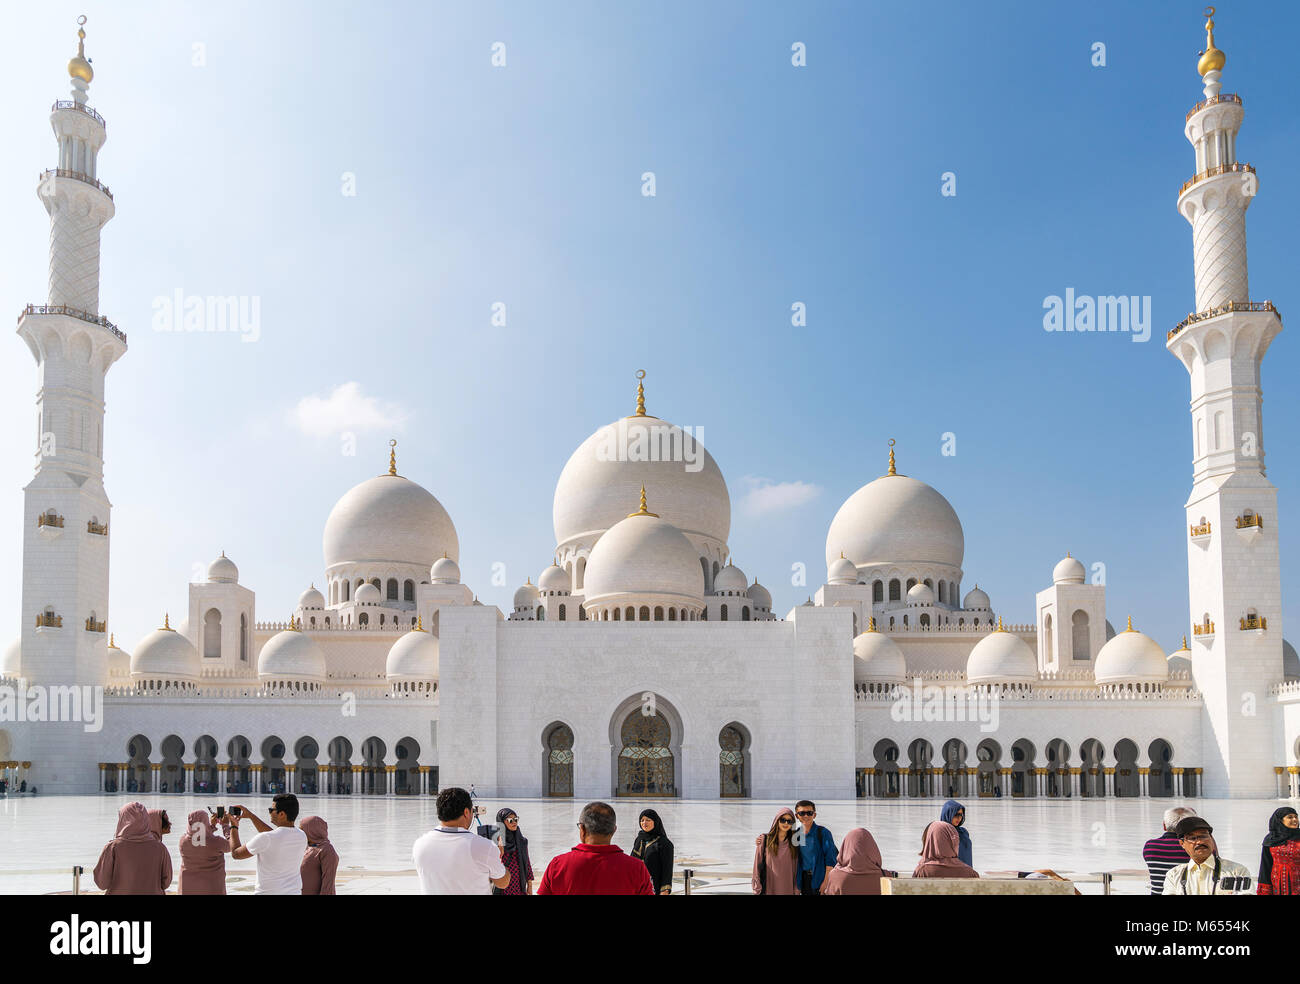 28th December 2017 - Abu Dhabi, UAE. Tourists take photographs and selfies in front of a gorgeous Sheikh Zayed mosque. - Stock Image